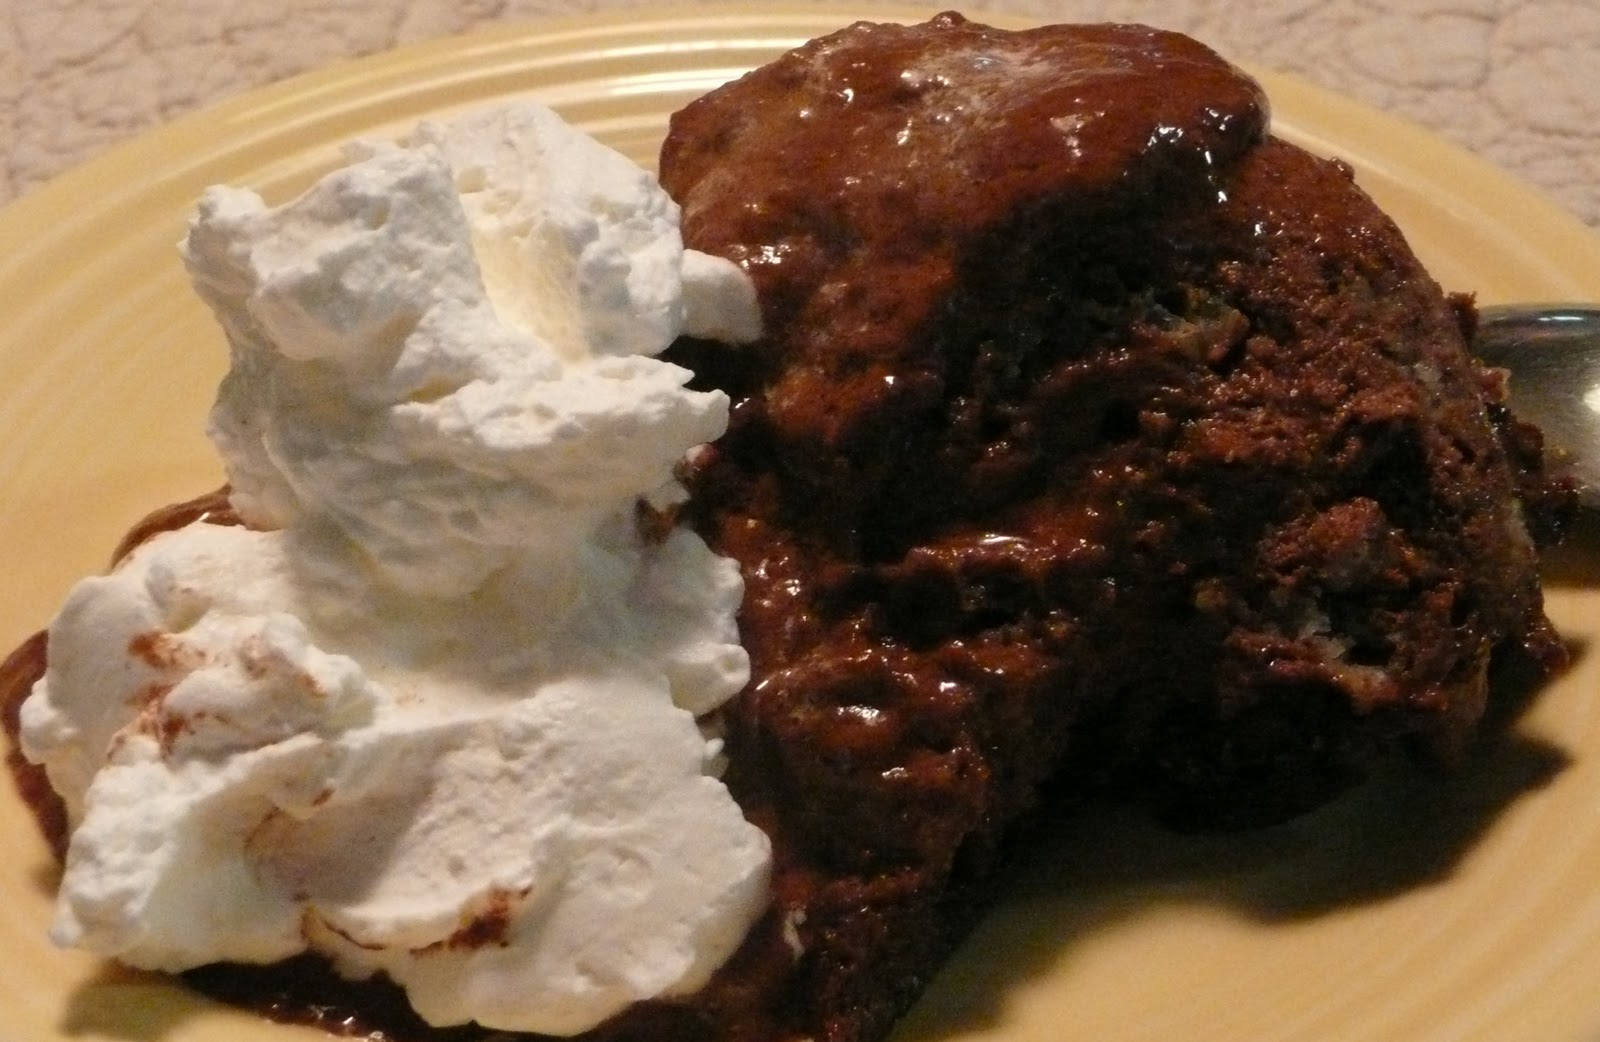 FROM A WRITER'S KITCHEN: Snow and a Chocolate Bread Pudding